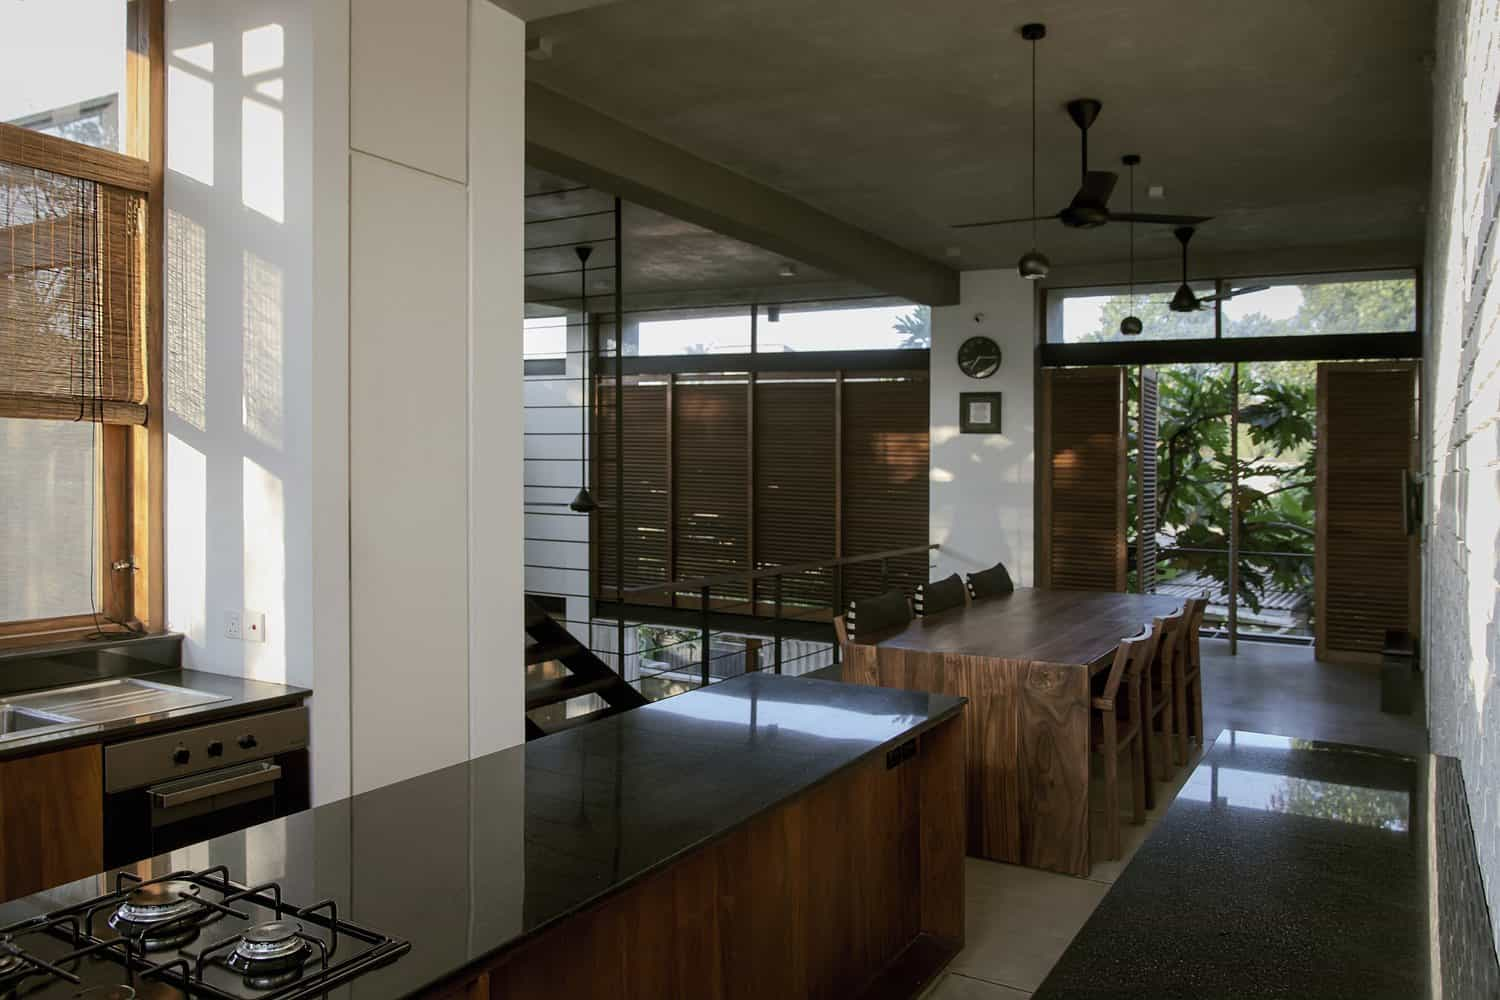 Private Residence Designed to Merge with the Developing Sub-Urban Context of the Area